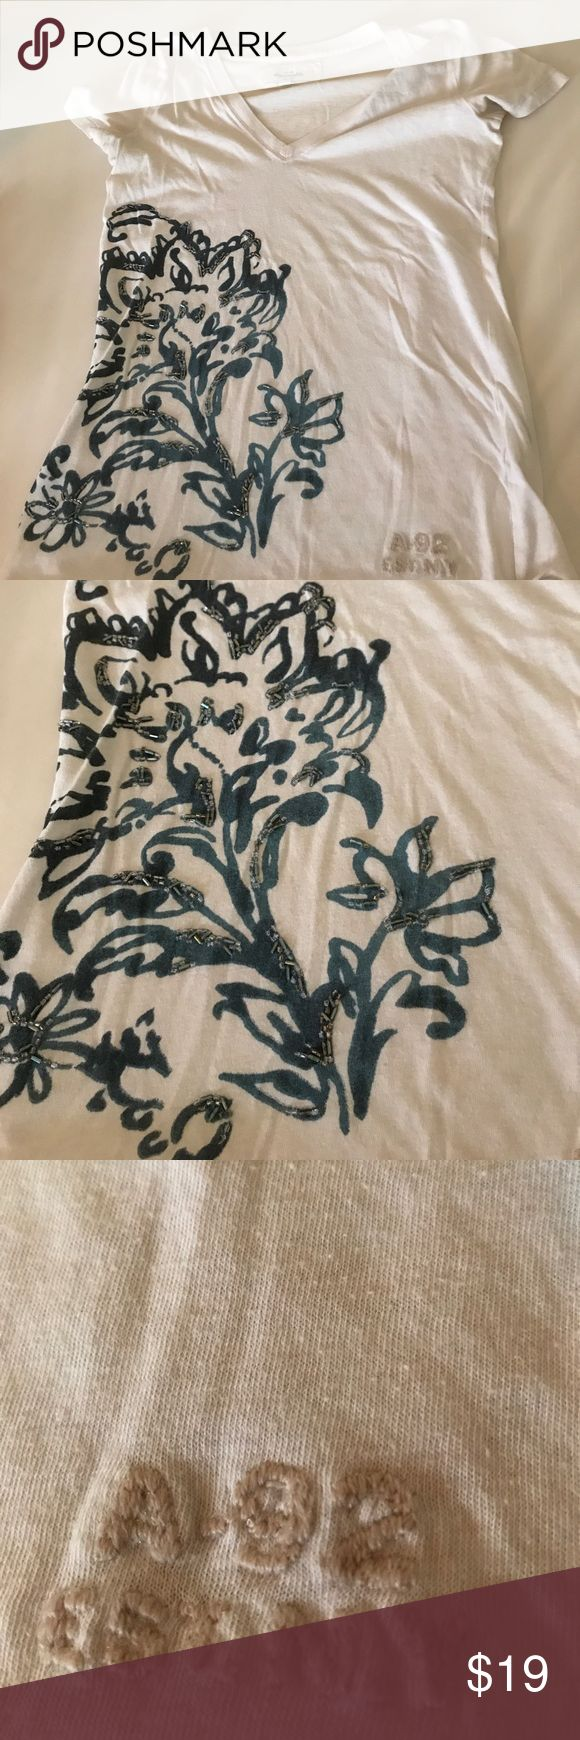 Abercrombie & Fitch Kids girls Sz XL tshirt EUC Pretty beaded flower design, great for back to school, bundle me abercrombie kids Shirts & Tops Tees - Short Sleeve